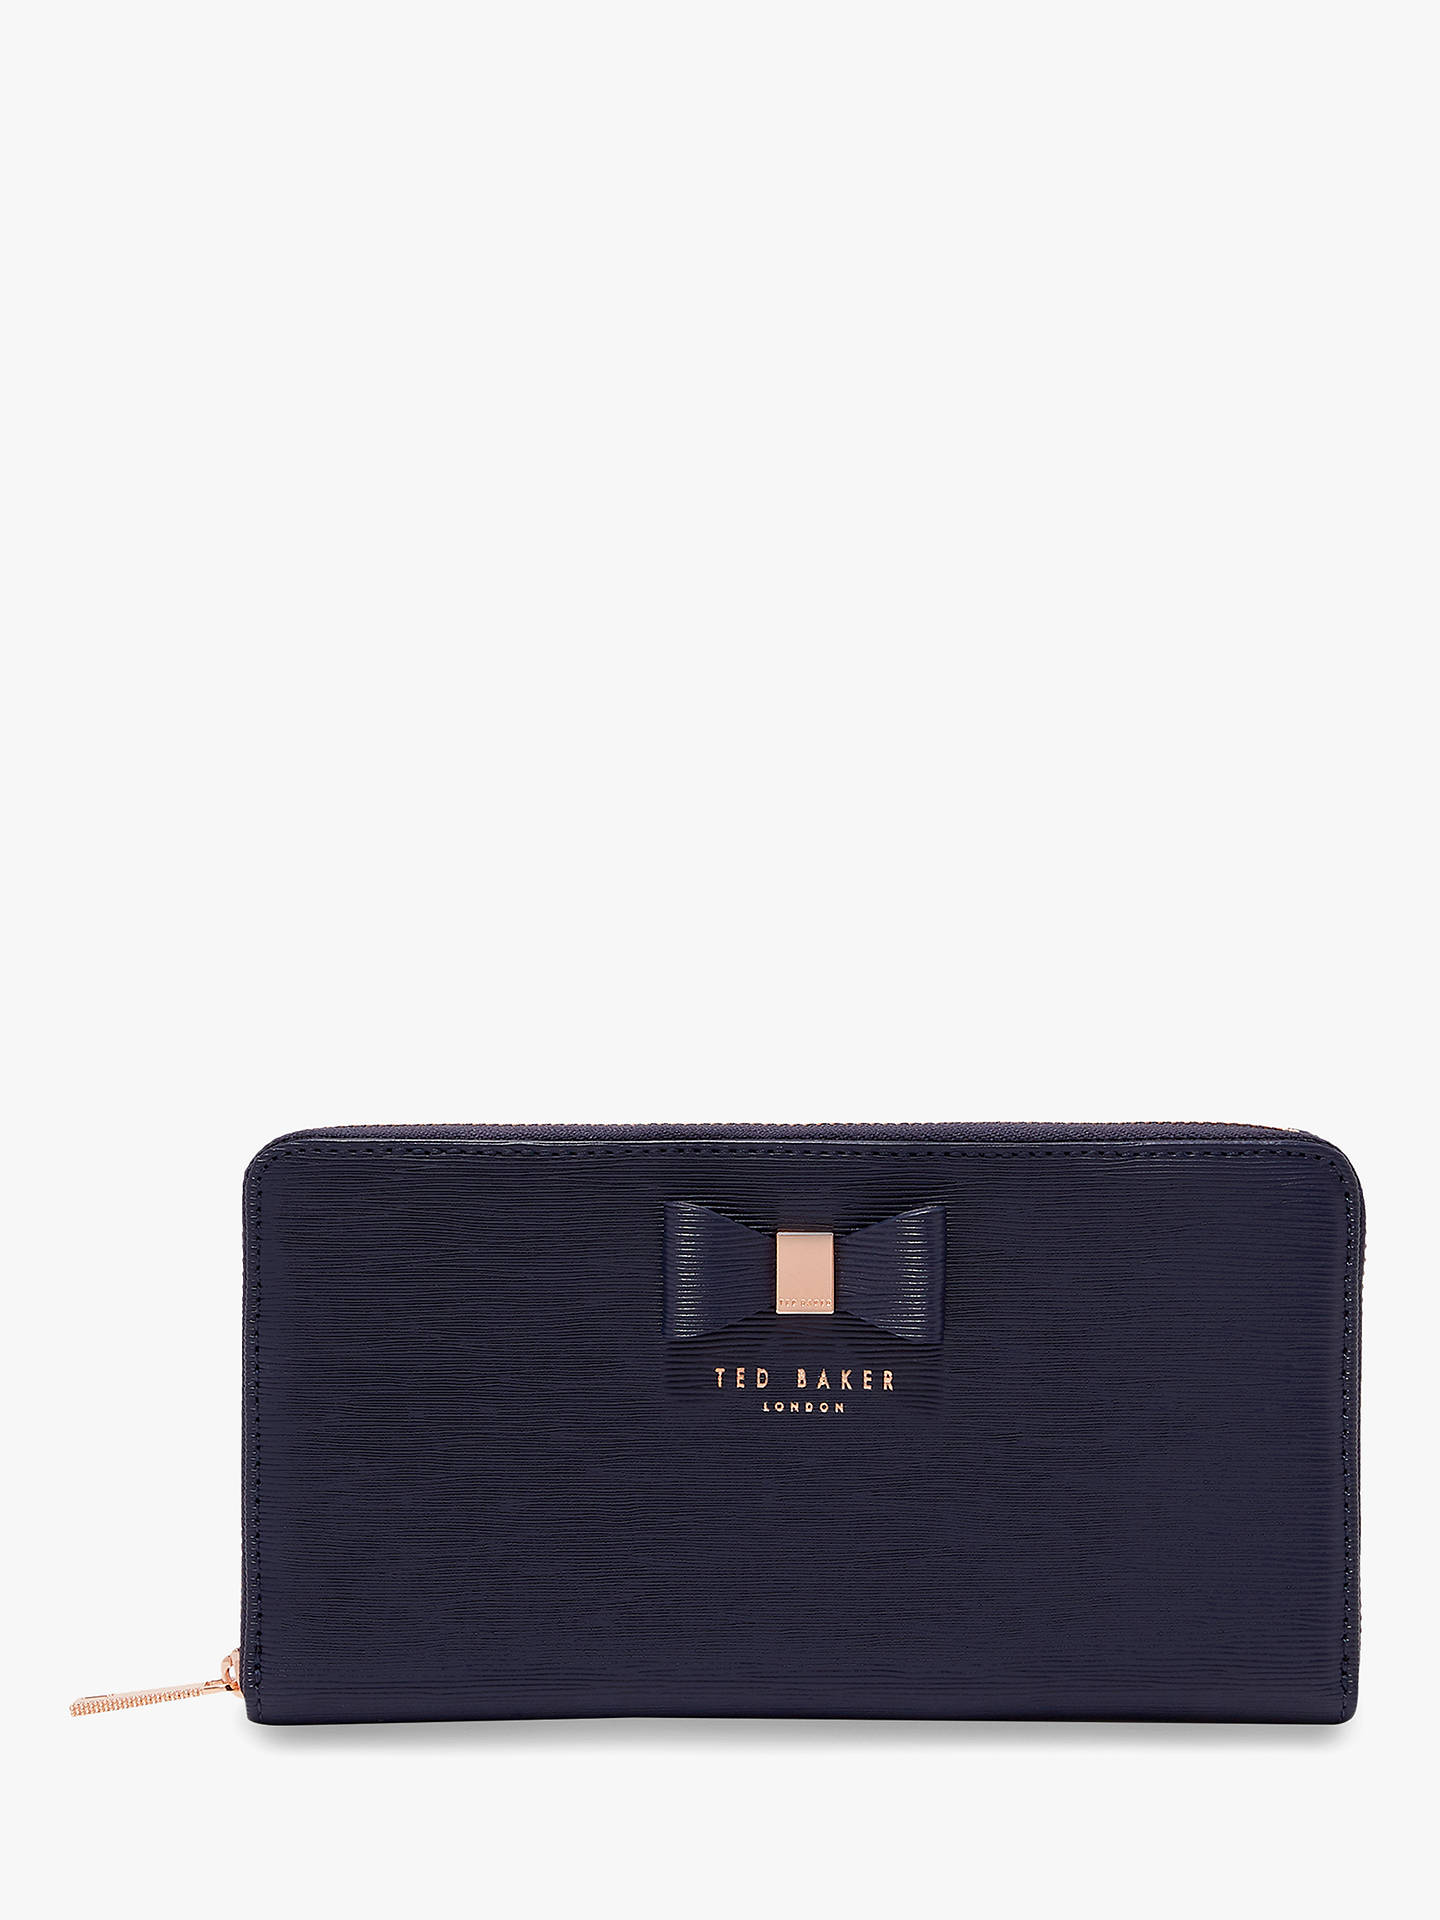 BuyTed Baker Peony Leather Zip Around Purse, Dark Blue Online at johnlewis.com